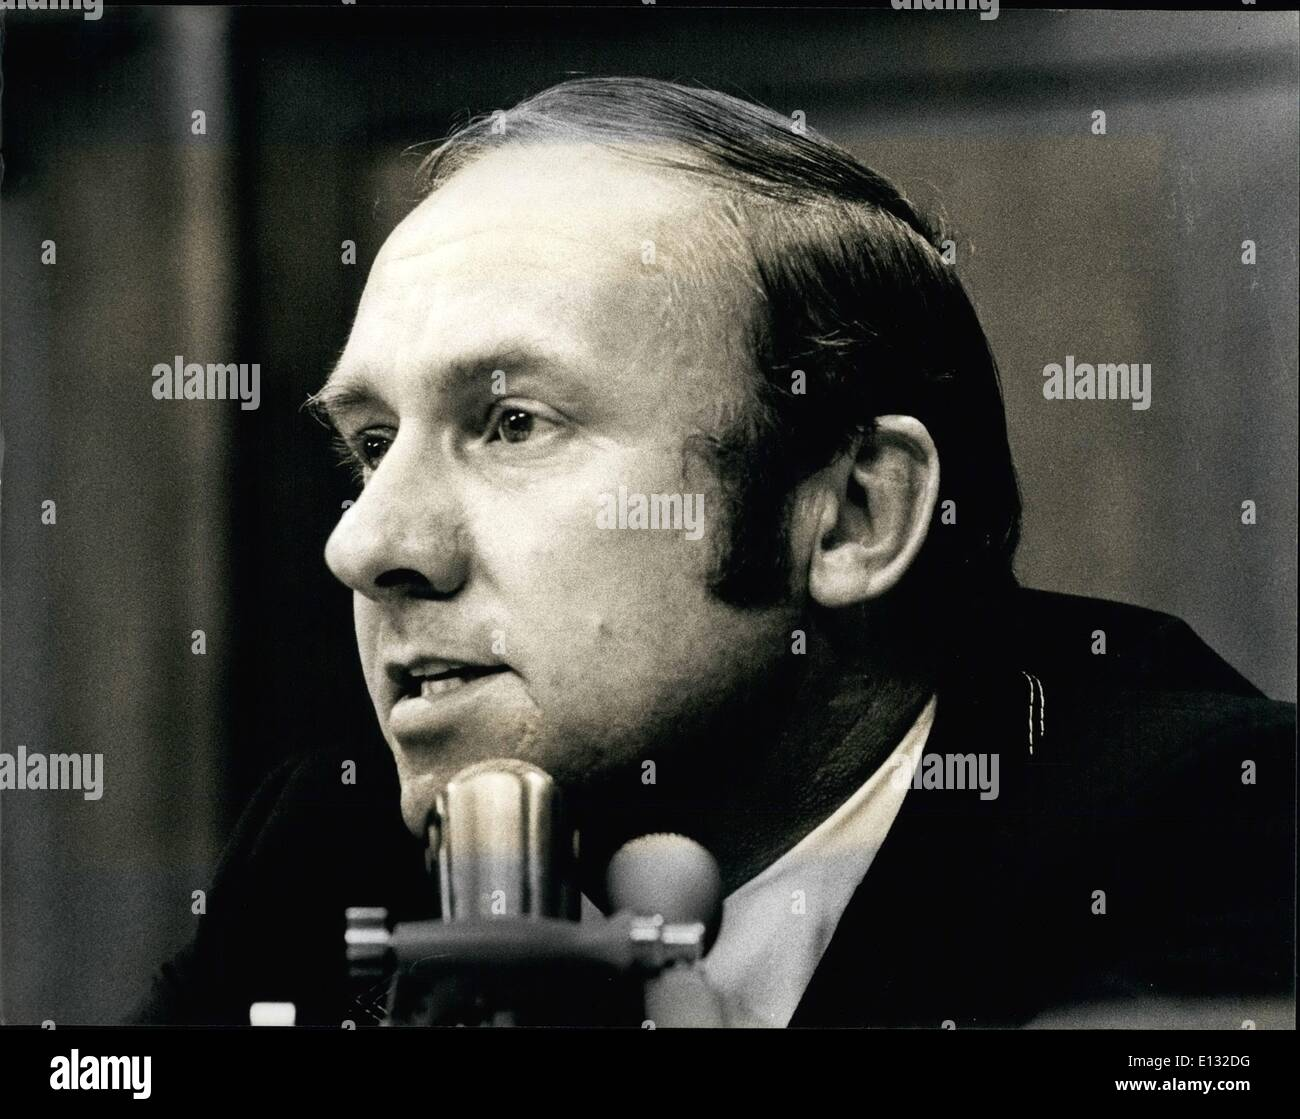 Feb. 26, 2012 - The House Judiciary Committee, July 24-26, 1974. Congressman Tom Railsback (R) Illinois, speaking during the debate to impeach ex-President Richard M. Nixon. Rep. Railsback voted in favor of impeachment. - Stock Image